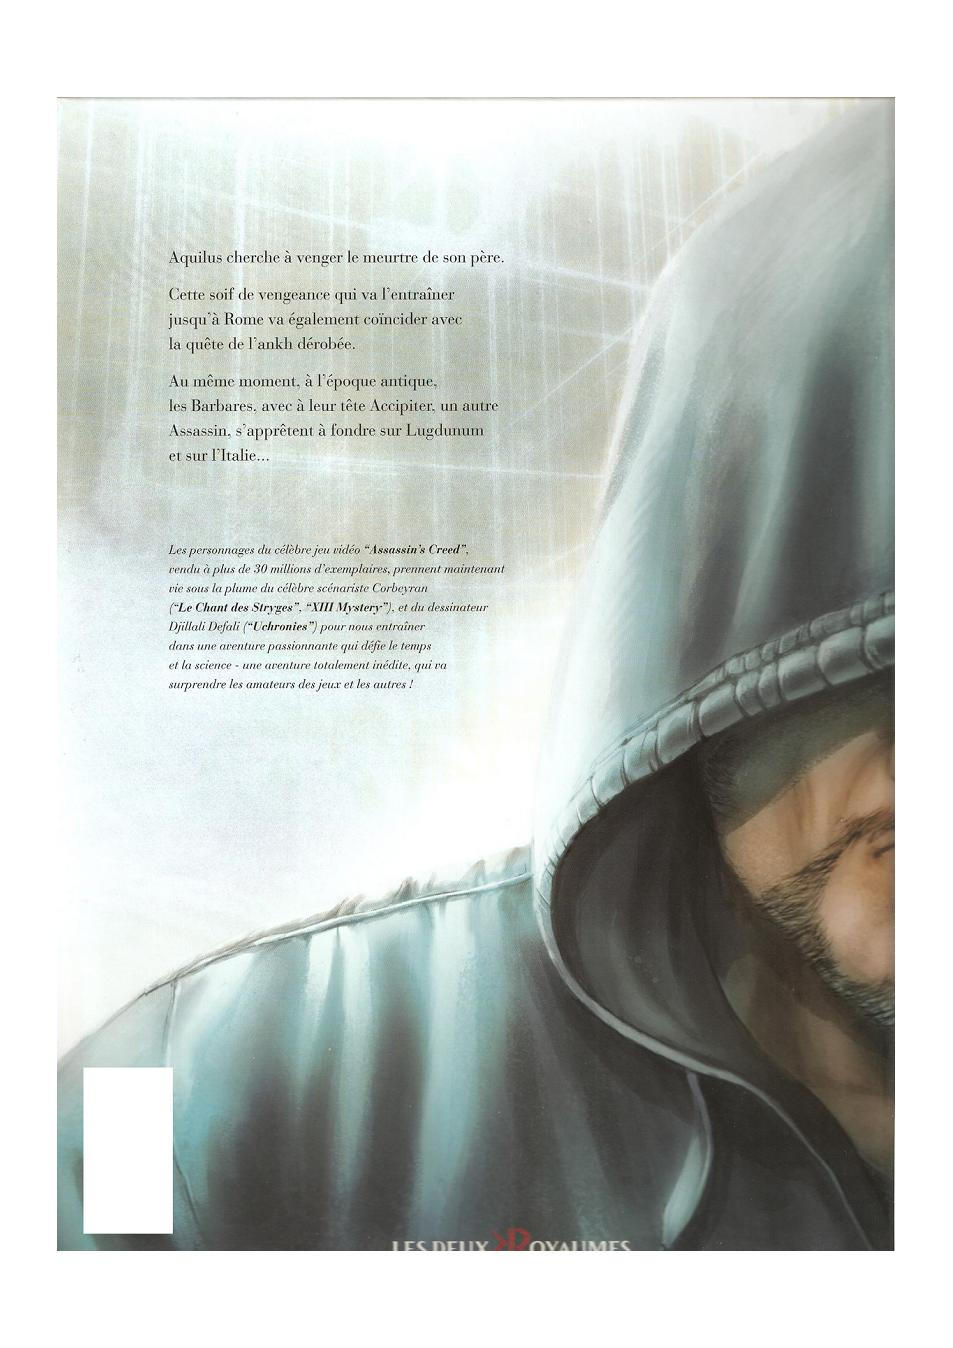 Read online Assassin's Creed (2009) comic -  Issue #3 - 49